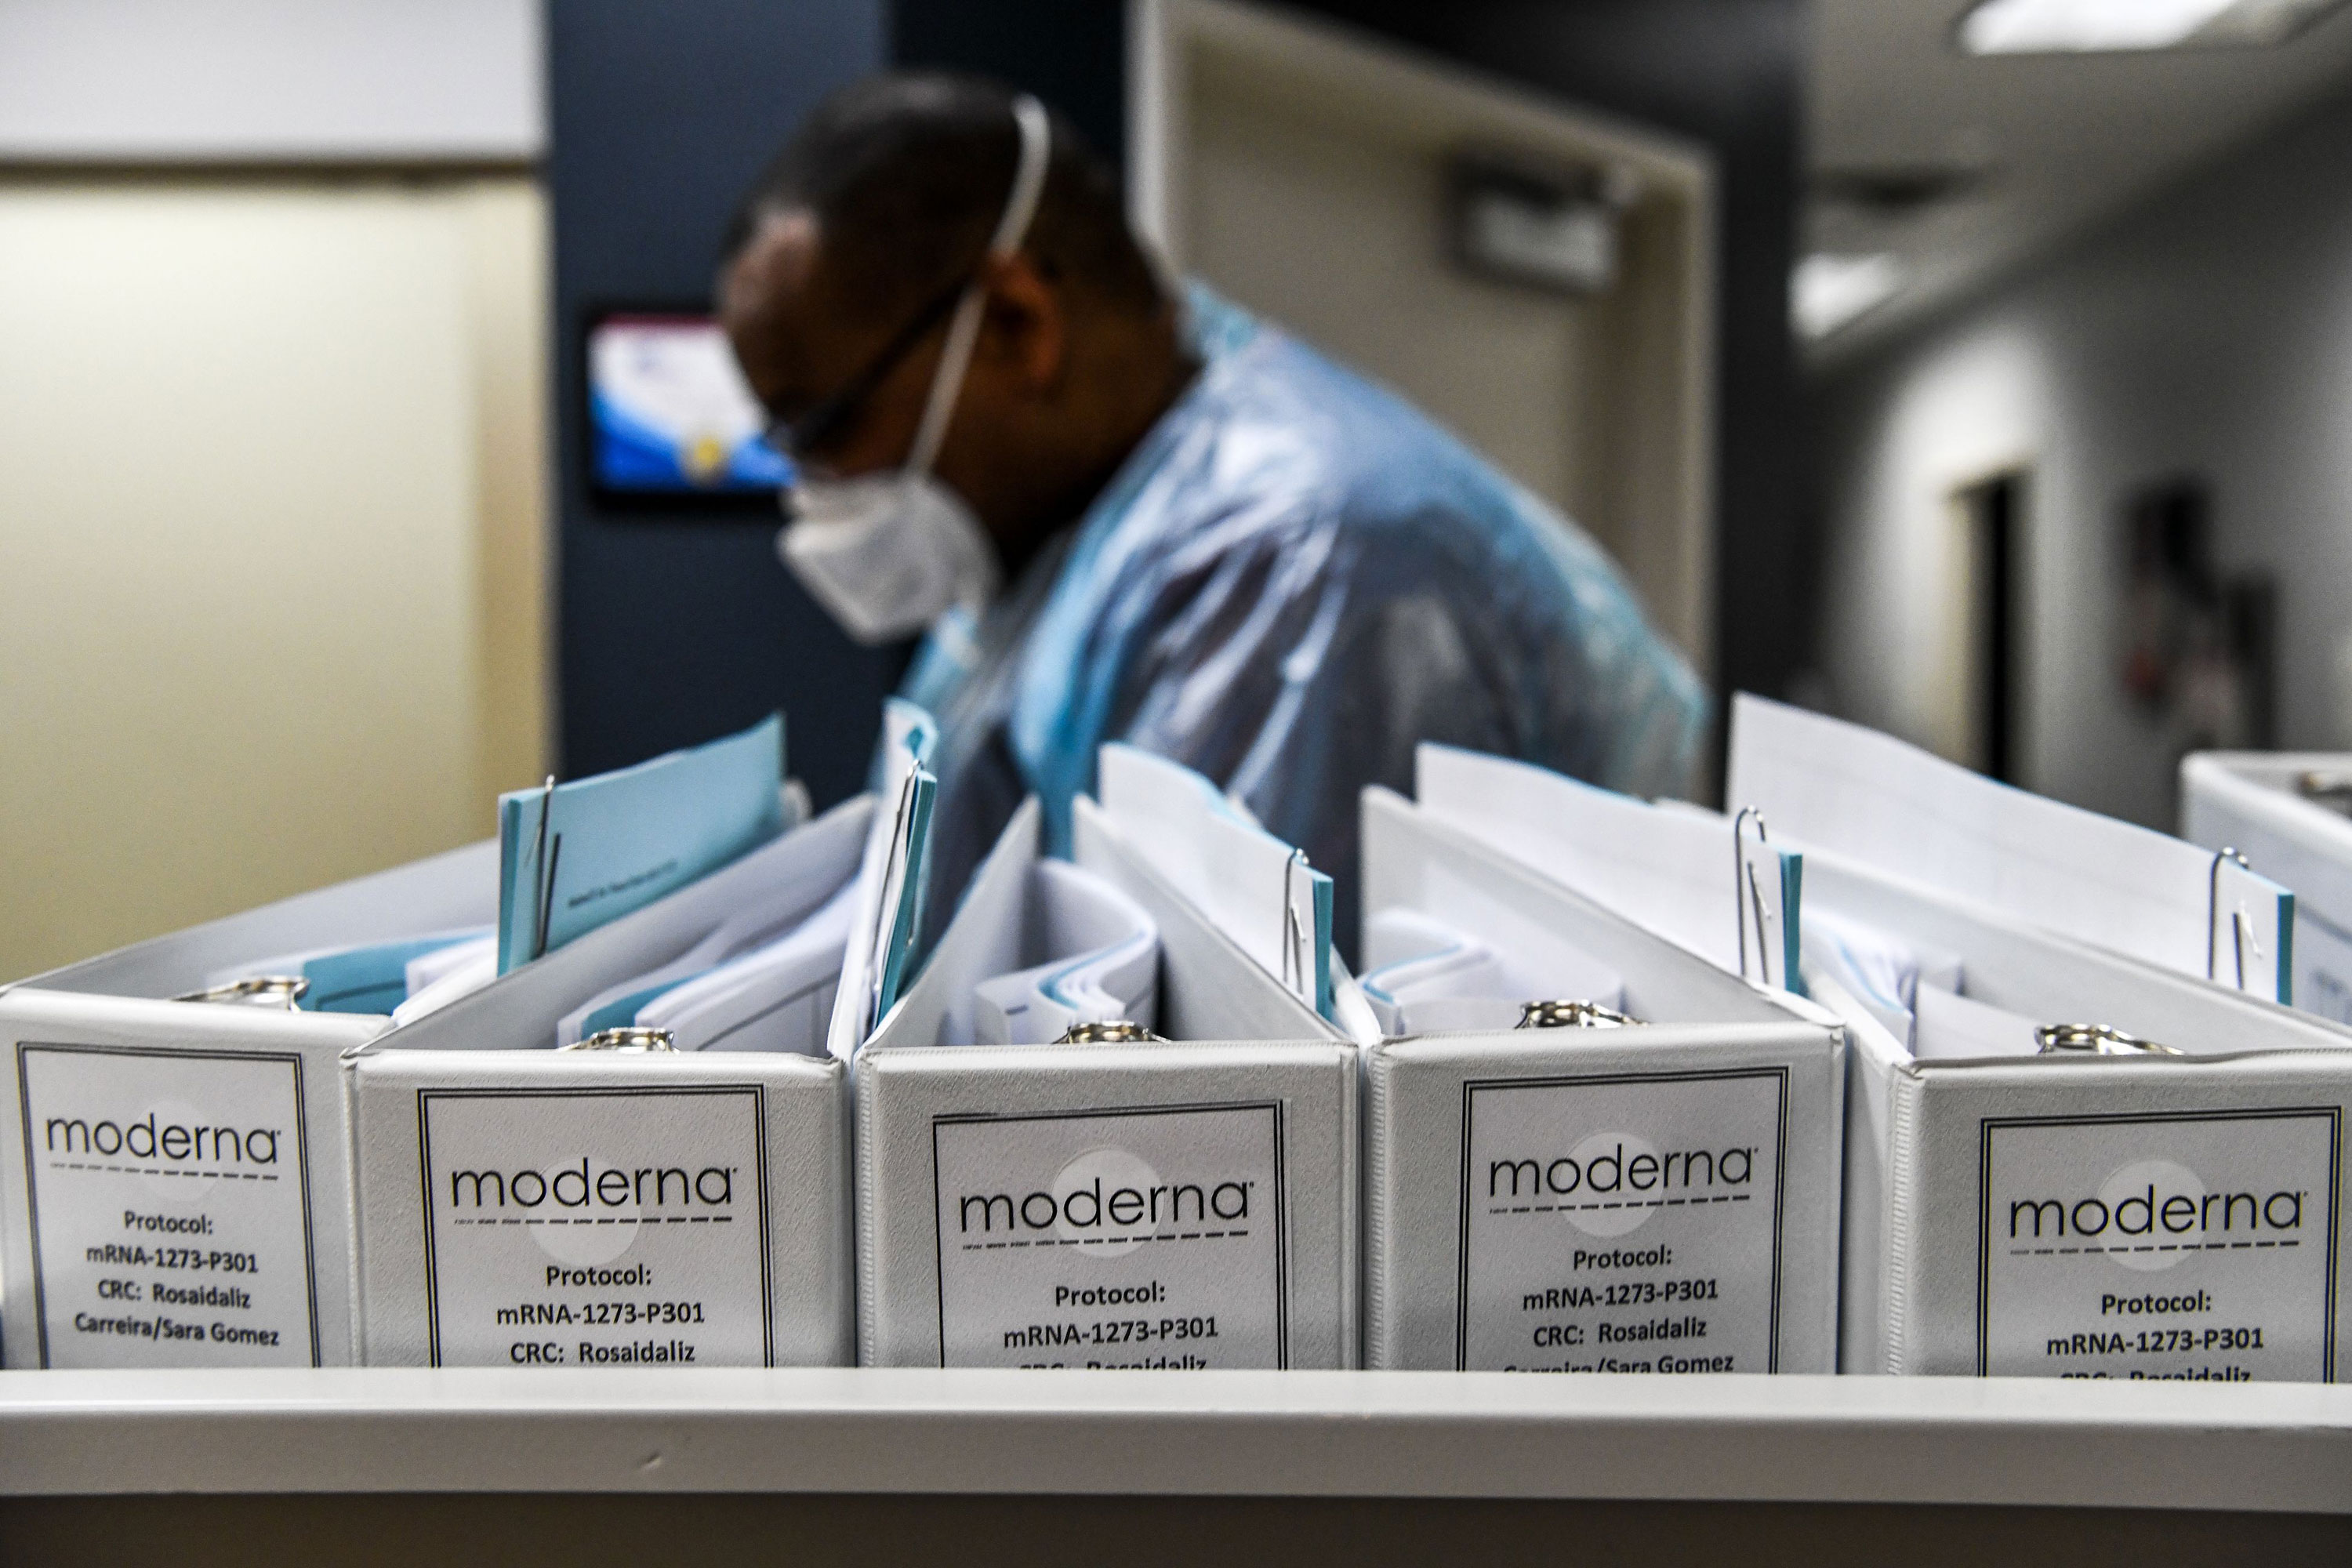 Moderna Protocol files for Covid-19 vaccinations are seen at the Research Centers of America in Hollywood, Florida, on August 13.